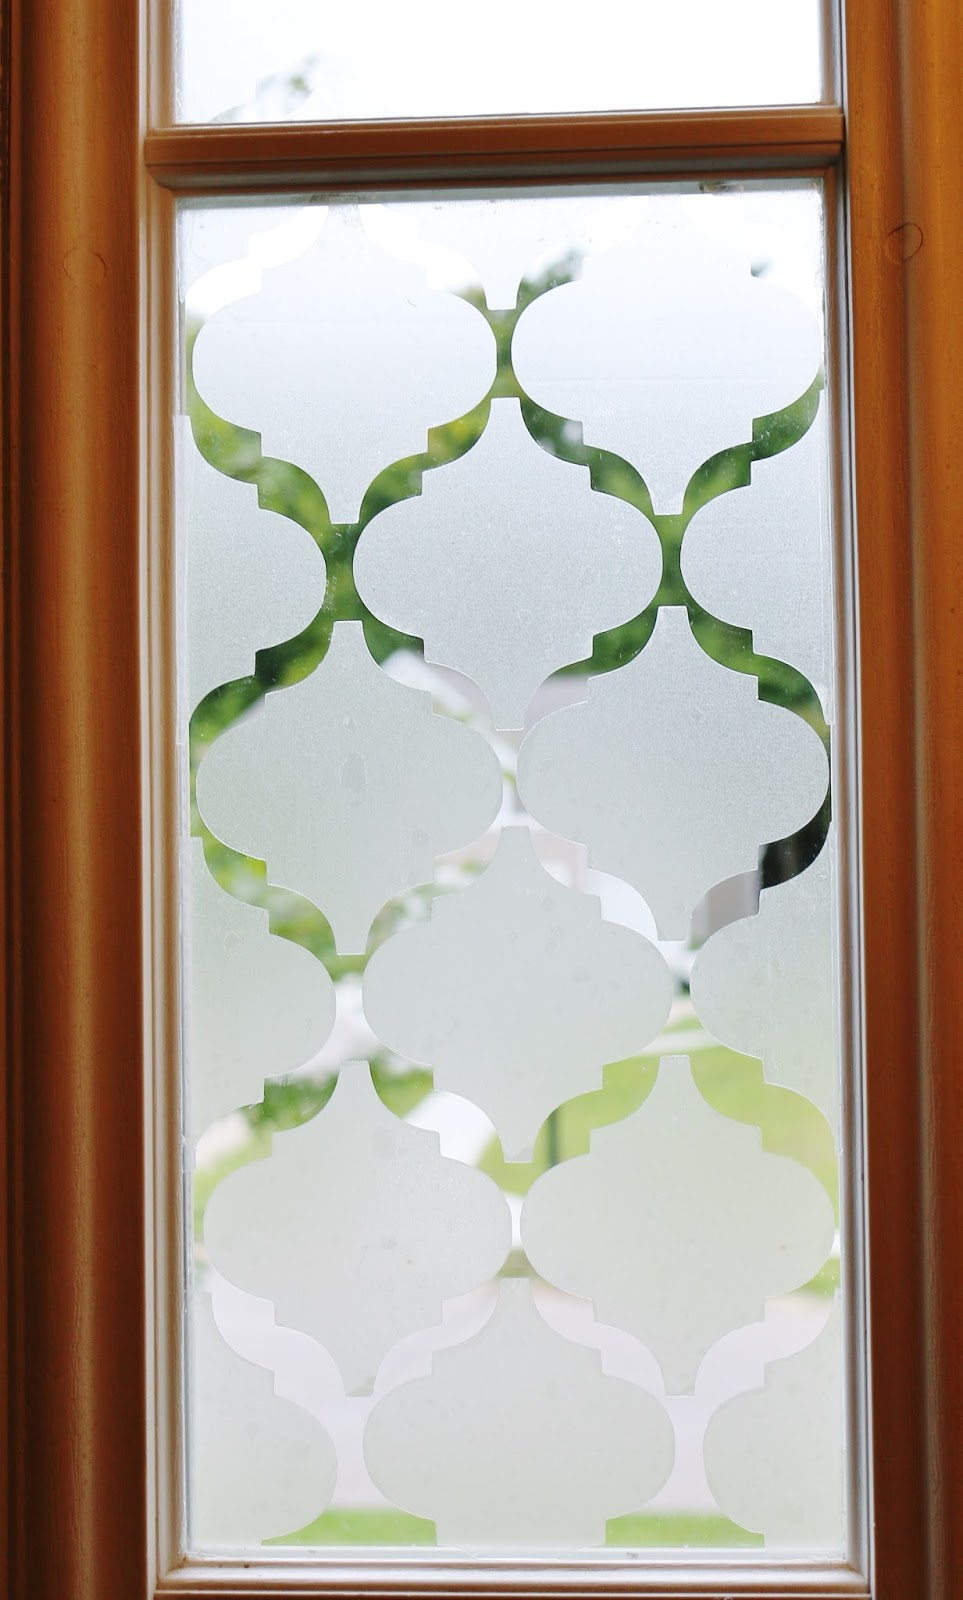 My Simple Modest Chic: DIY Frosted Window Privacy Film